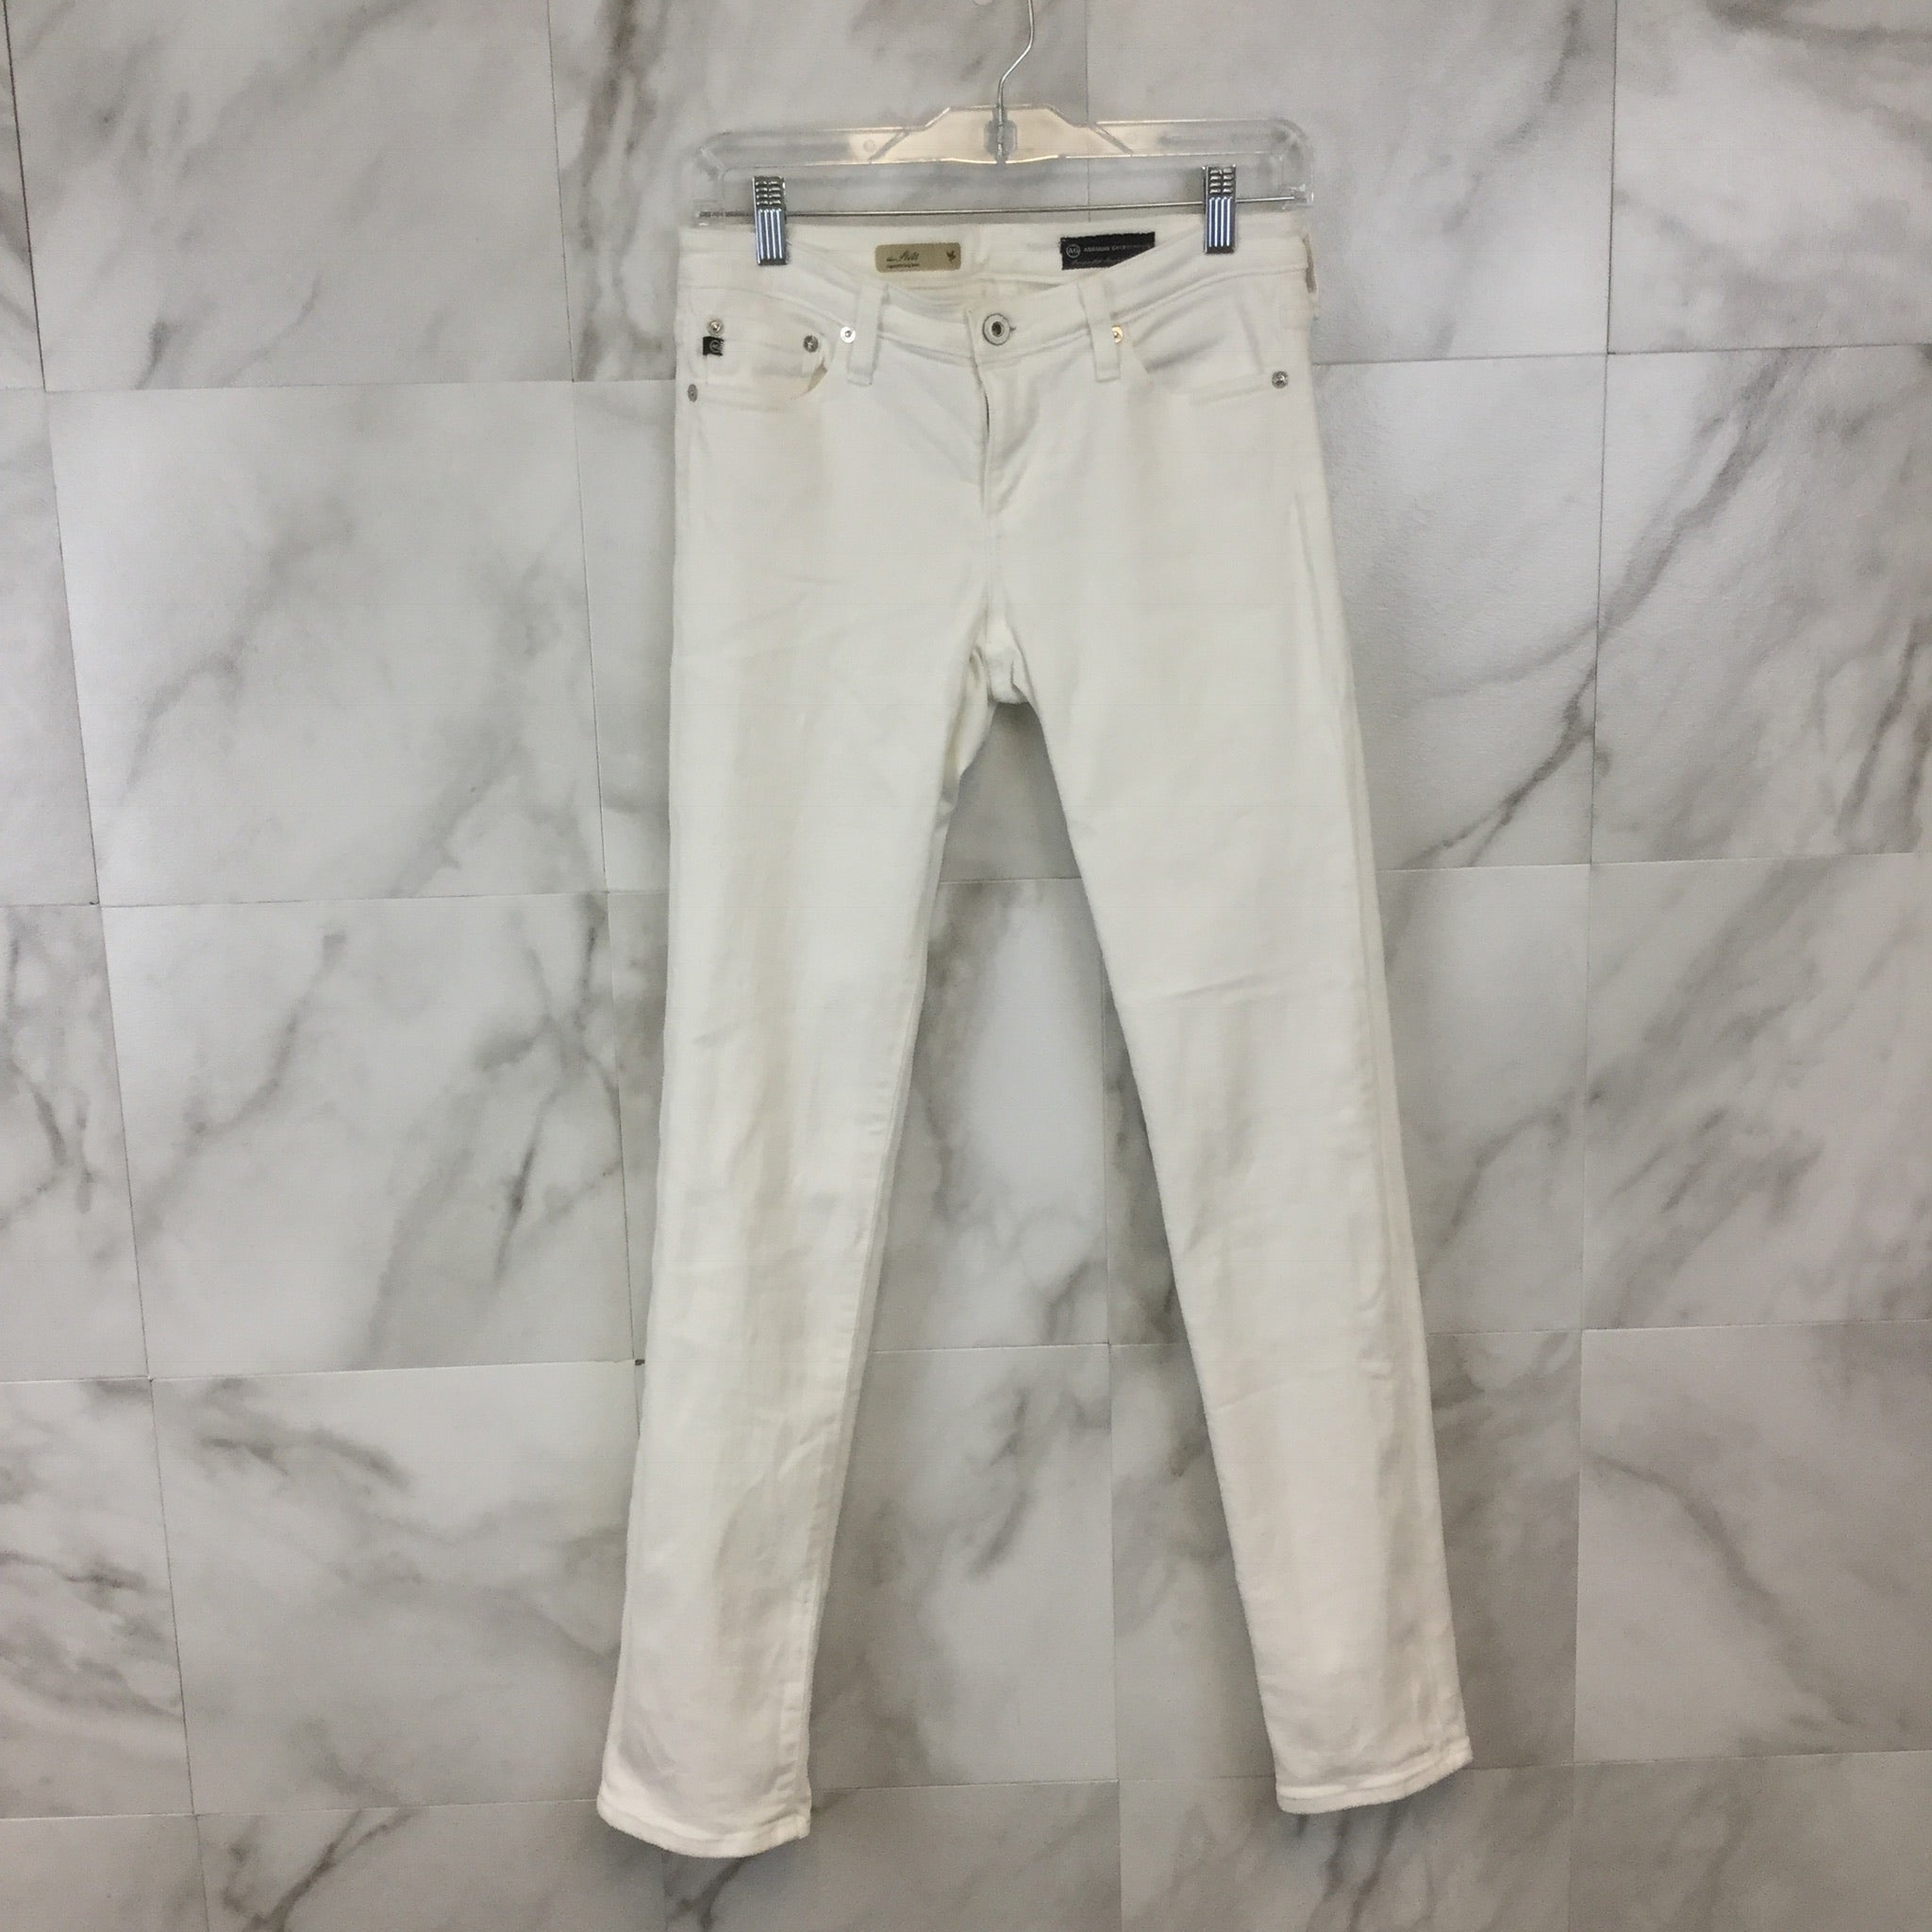 Adriano Goldschmied The Stilt Jean size 28R